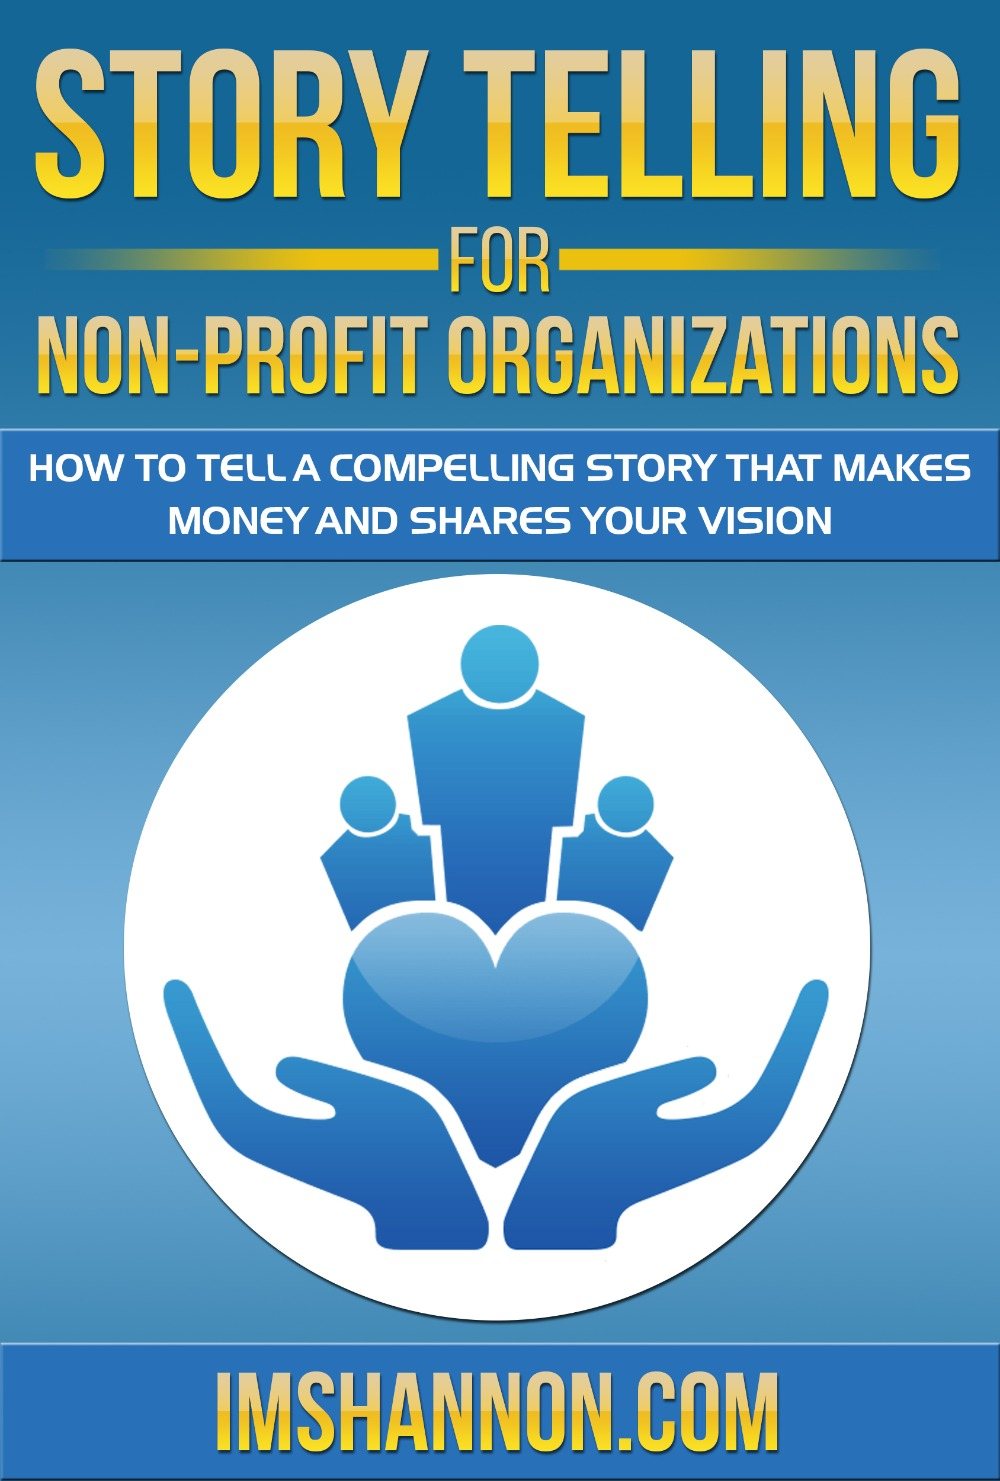 E-Book: Storytelling for non-profit organizations